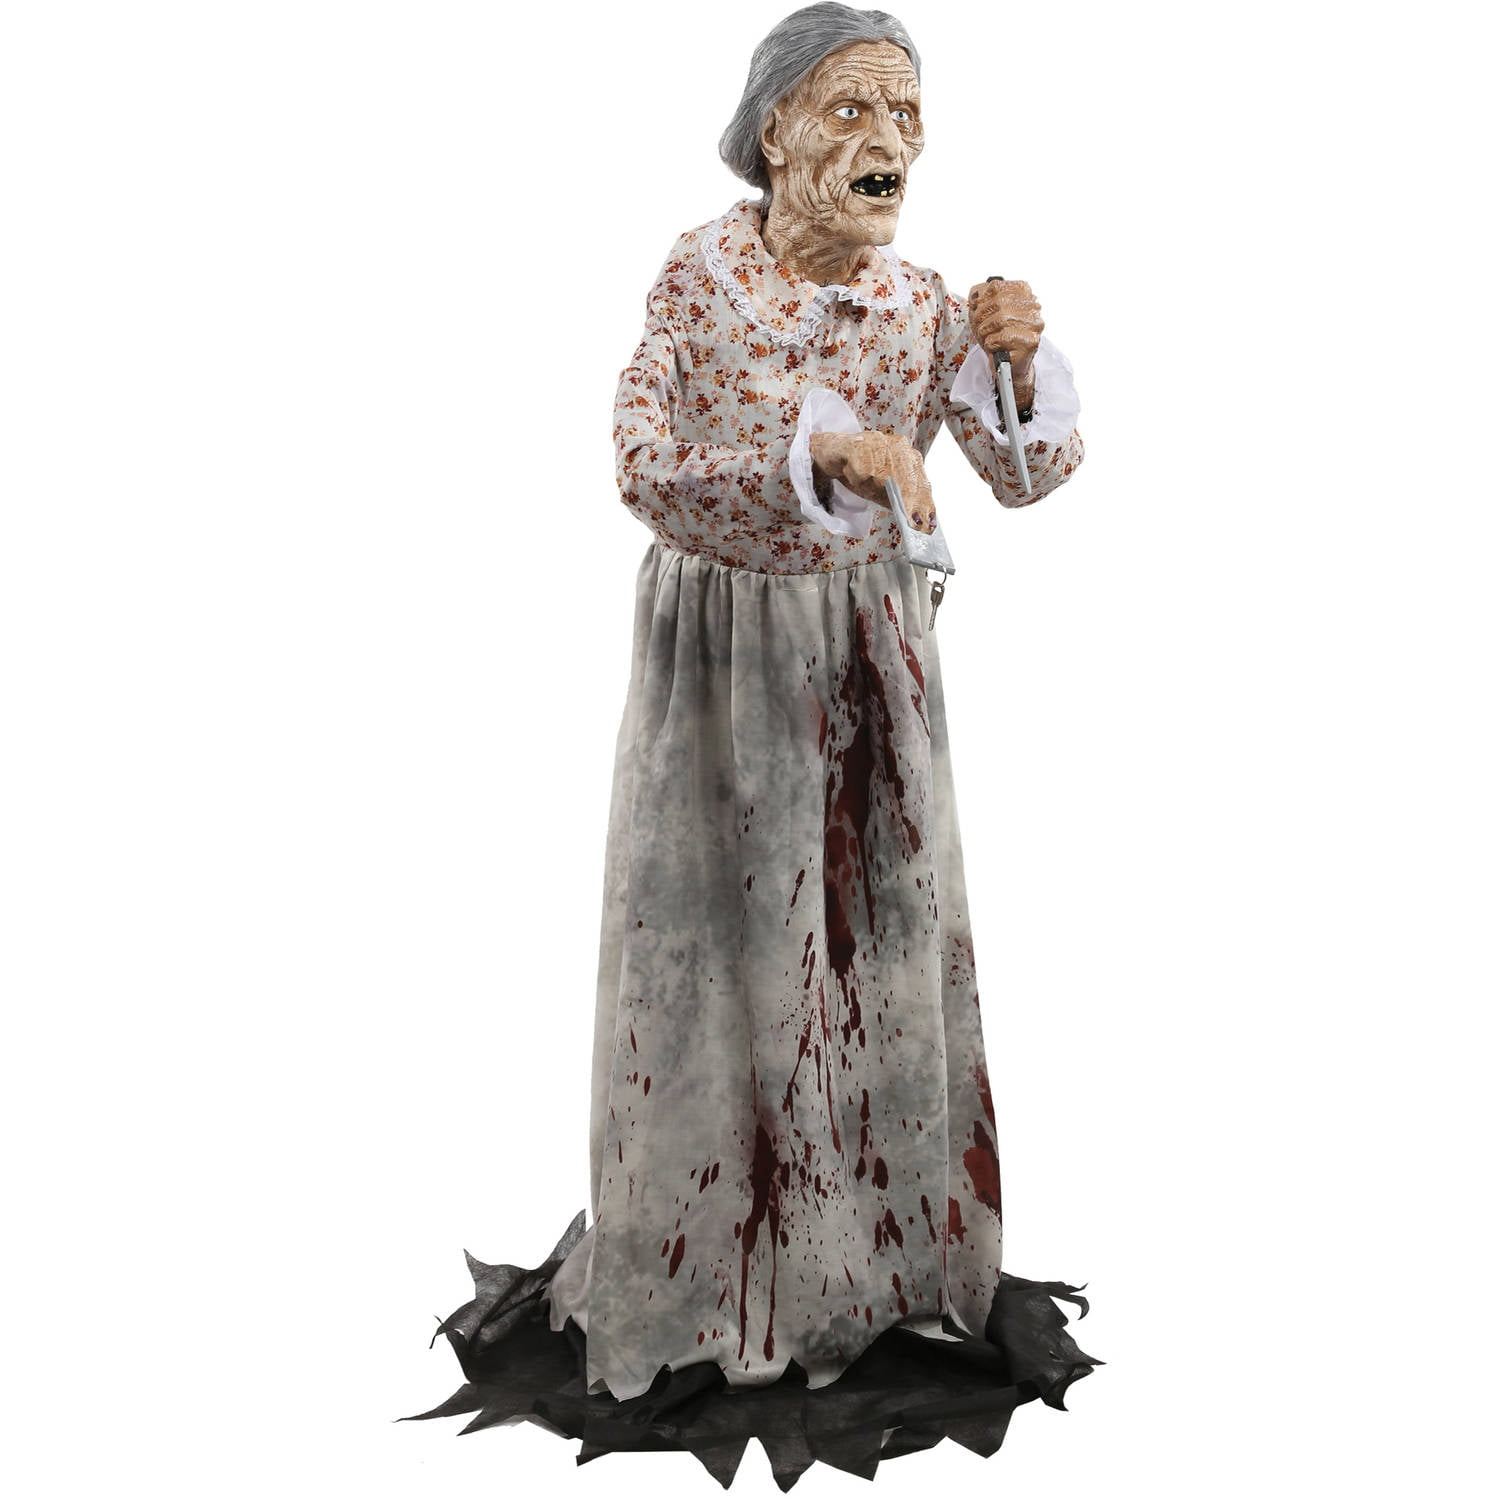 Details about Granny Bates Halloween Prop Lifesize 5 feet Poseable Haunted House Decoration